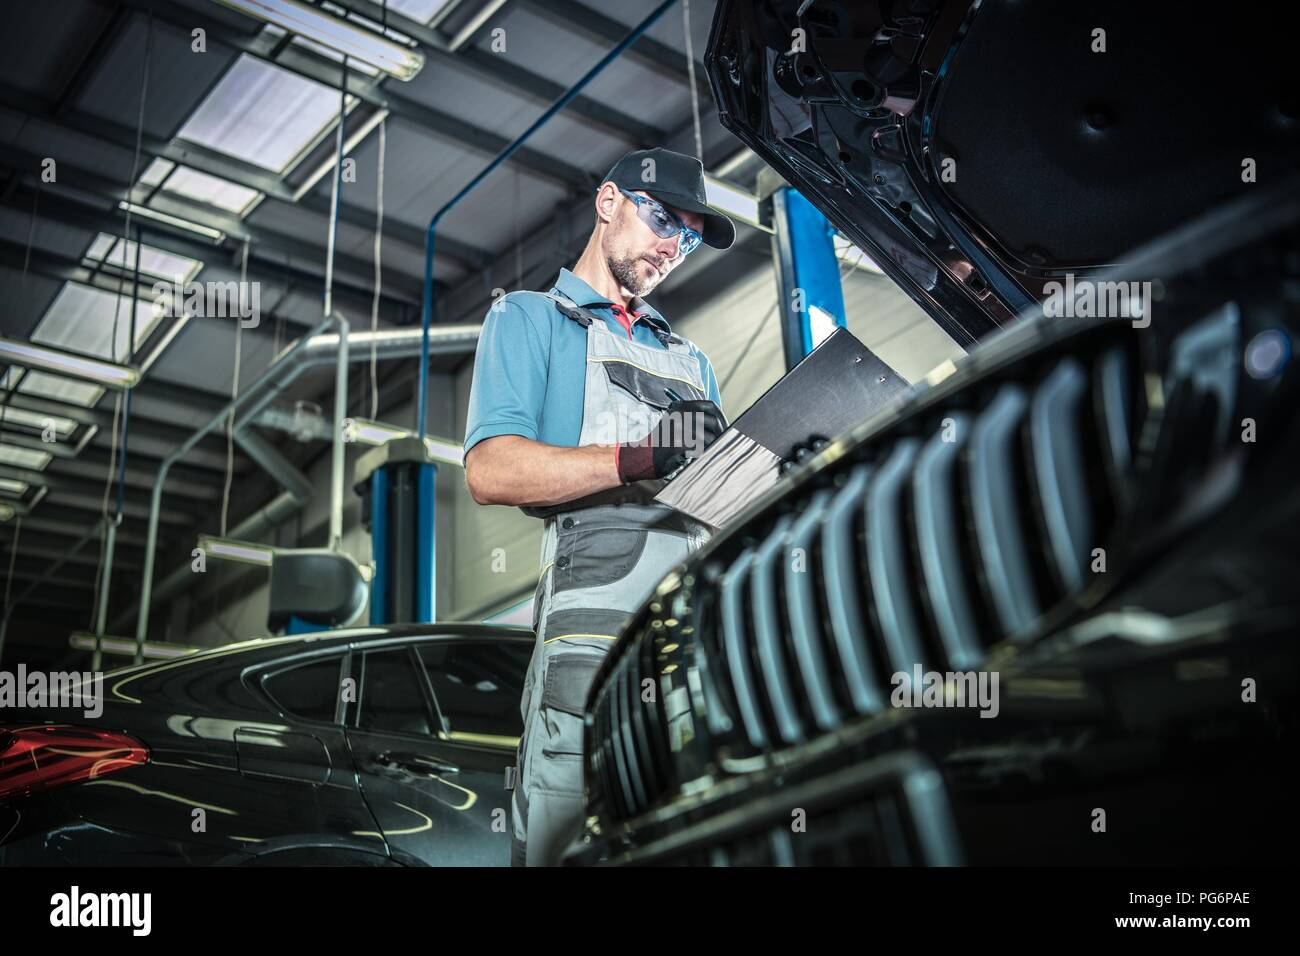 Caucasian Car Mechanic in His 30s Performing Vehicle Maintenance with Documentation in Hand. - Stock Image